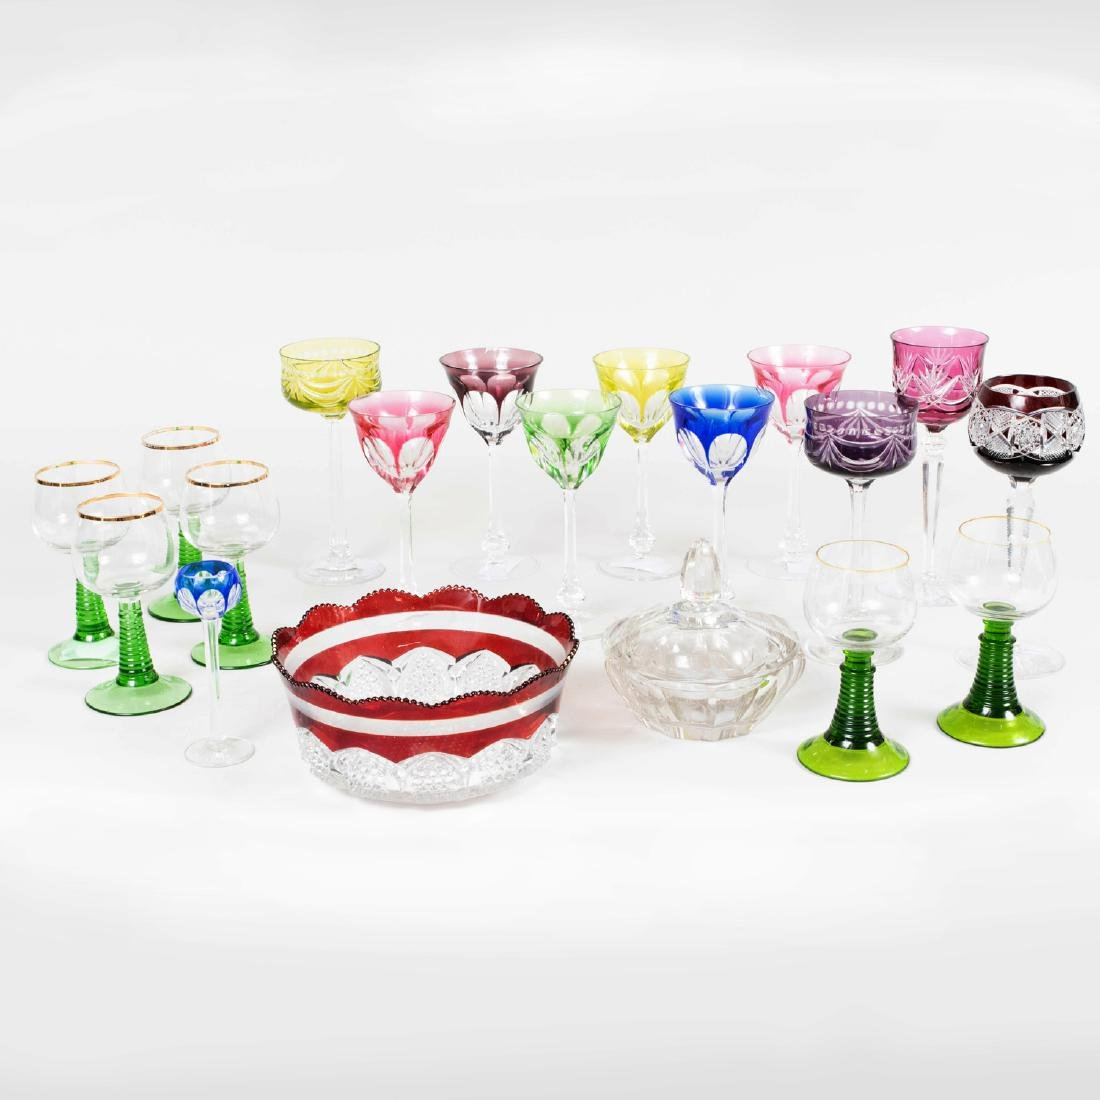 Group of Colored Cut Glass Stemware and Table Articles - 2